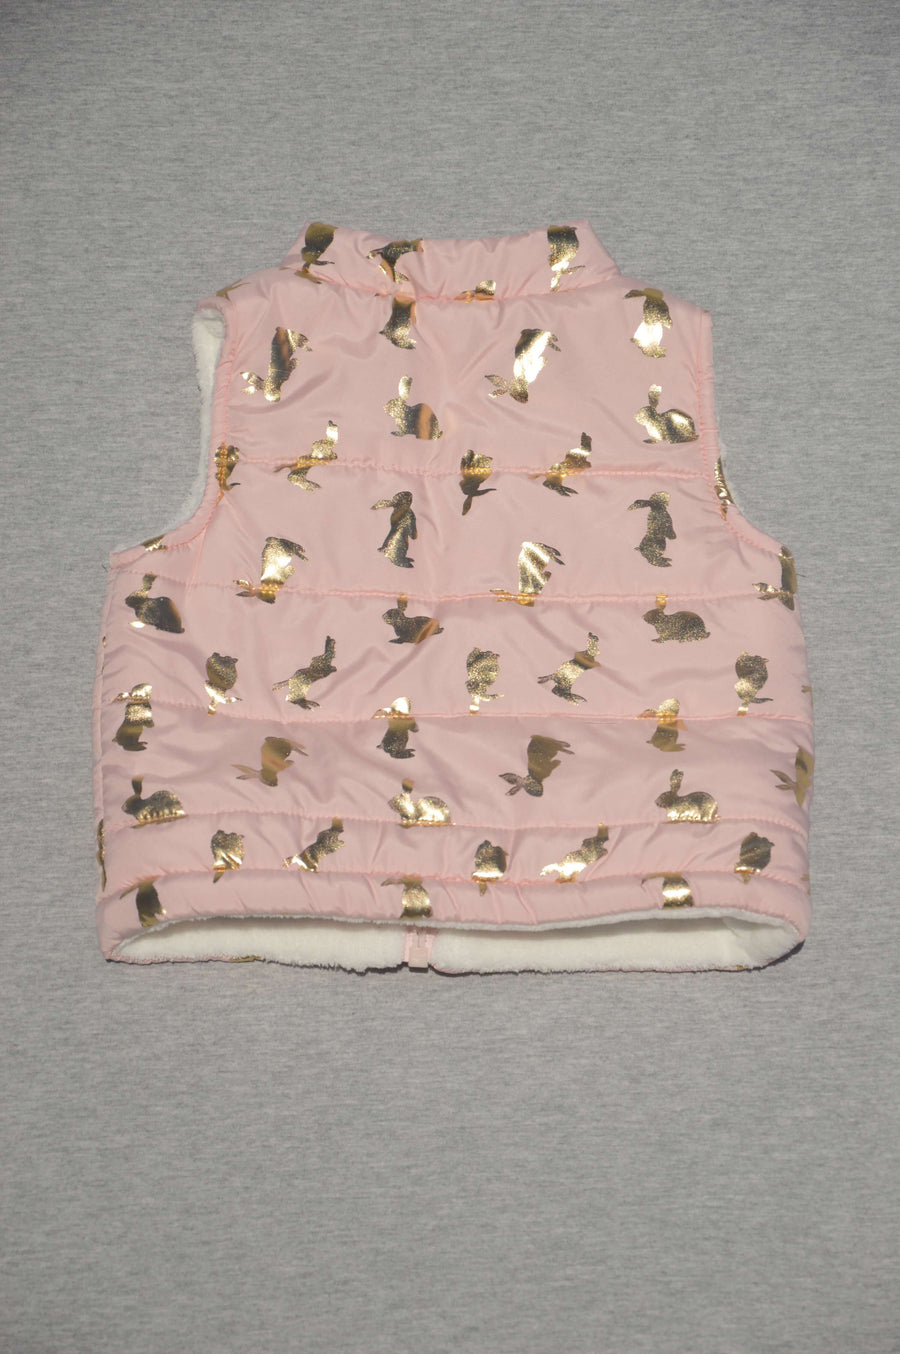 Teeny Weeny - nearly new - vest with printed gold rabbit pattern, size 3-6m